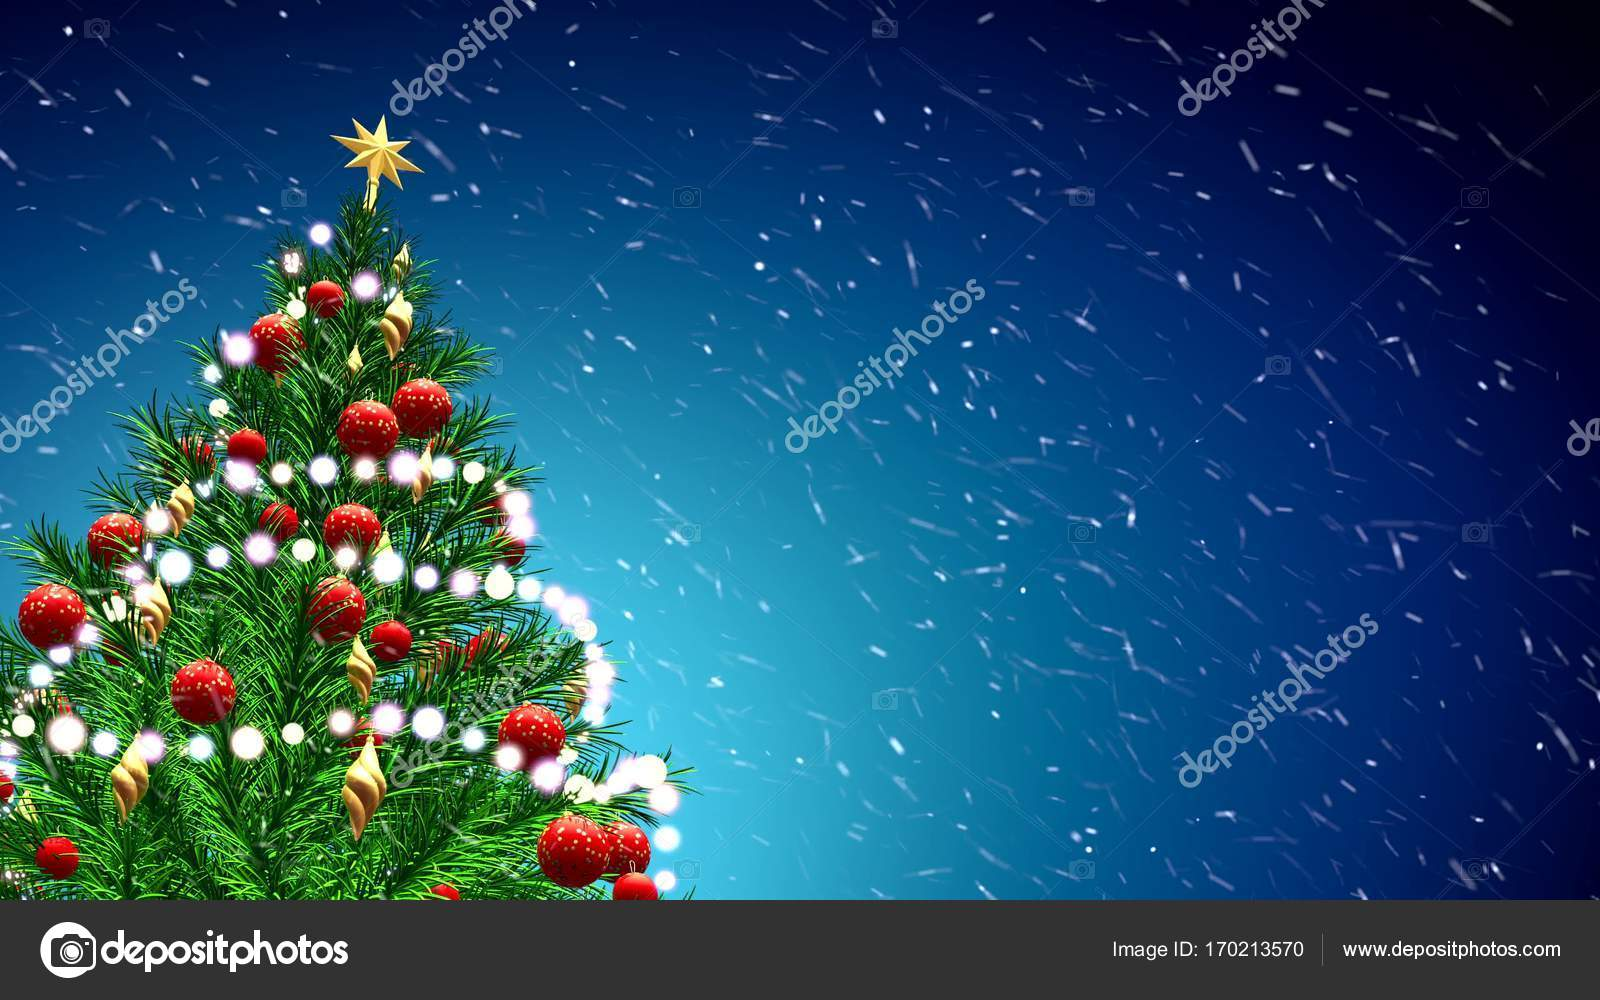 3d Illustration Of Green Christmas Tree Over Blue Background With Snowflakes And Red Balls Stock Photo Image By C Irochka 170213570